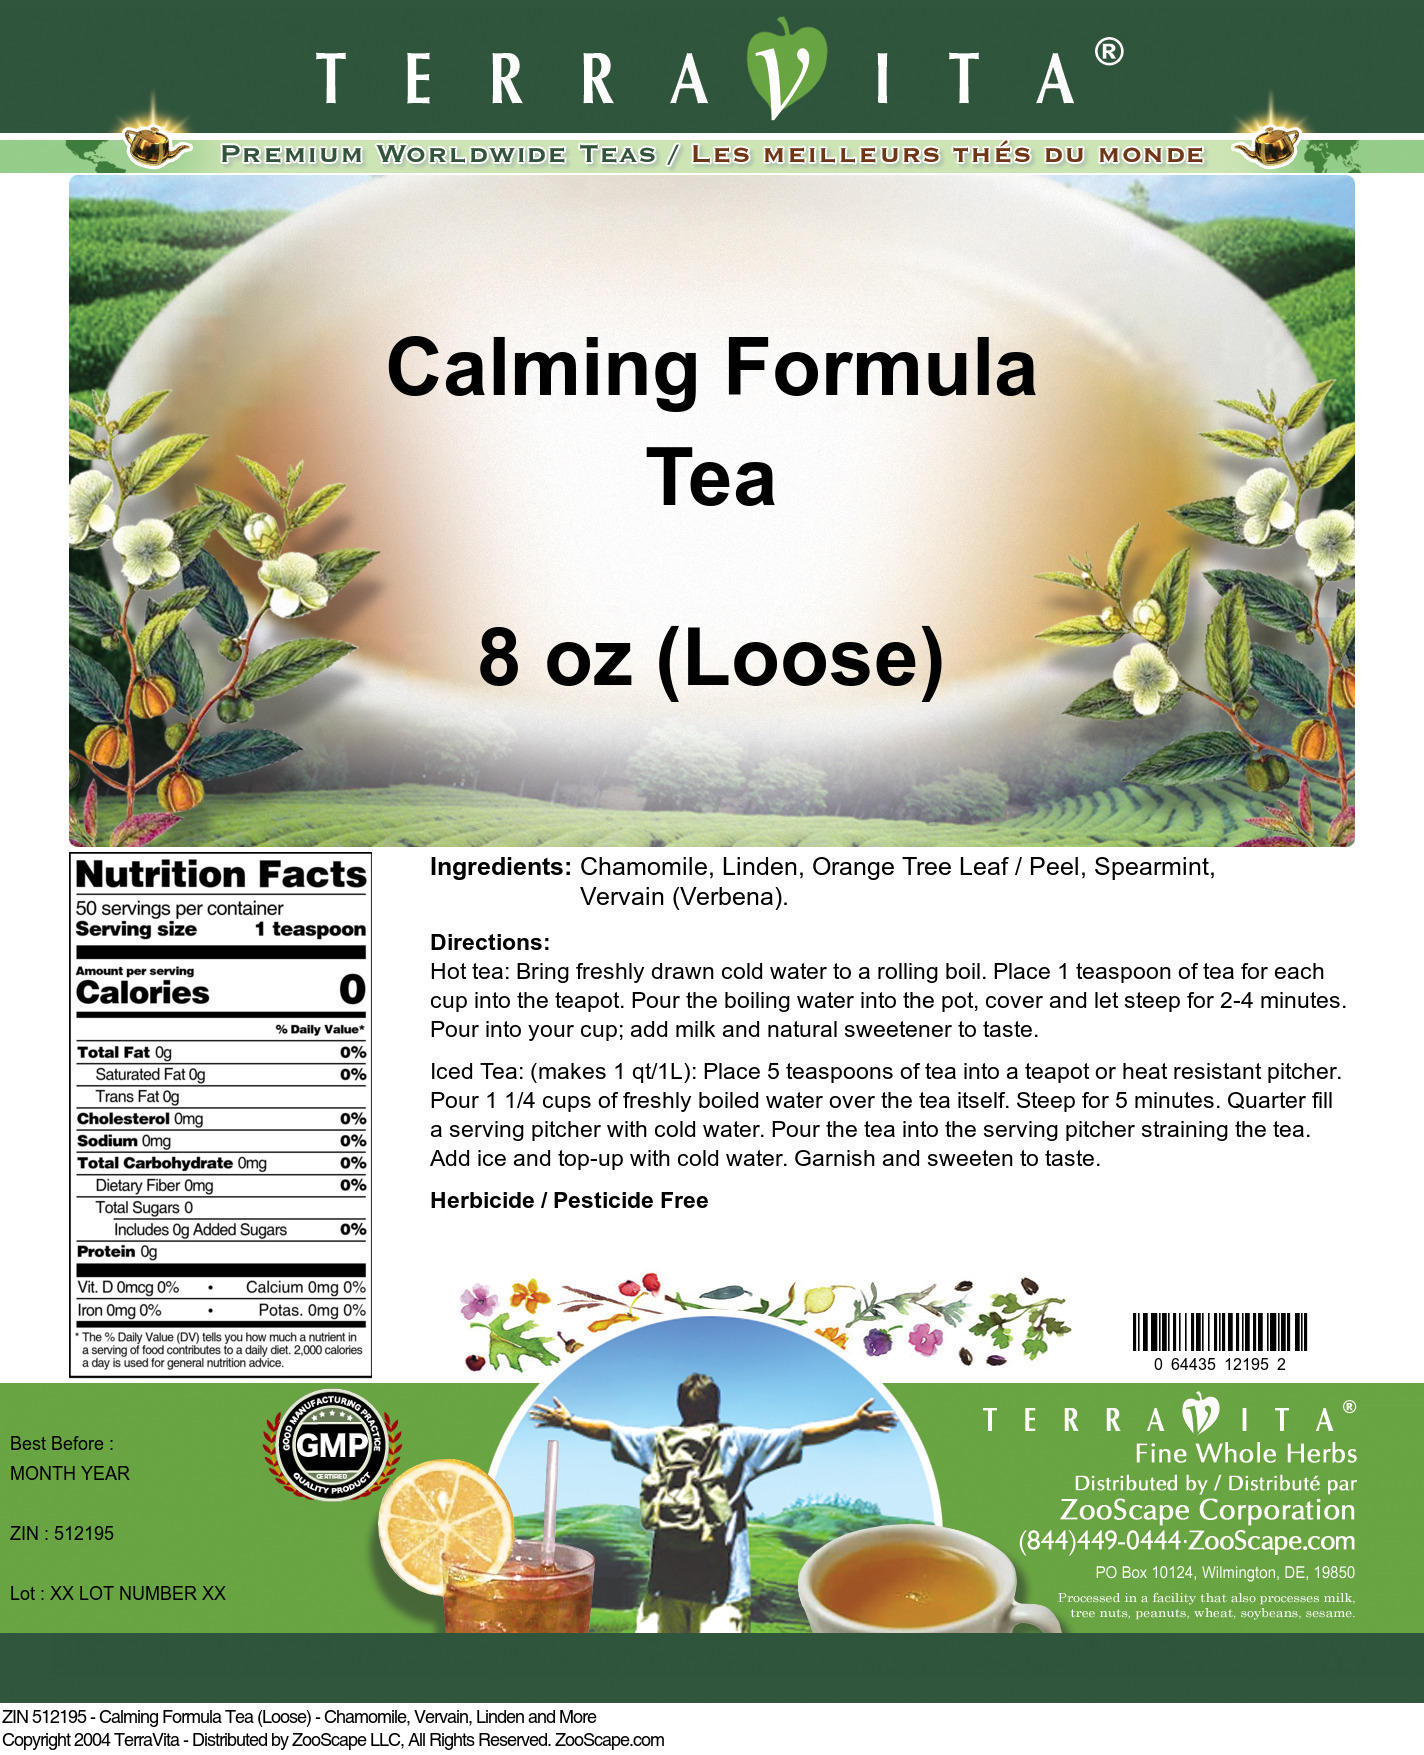 Calming Formula Tea (Loose) - Chamomile, Vervain, Linden and More